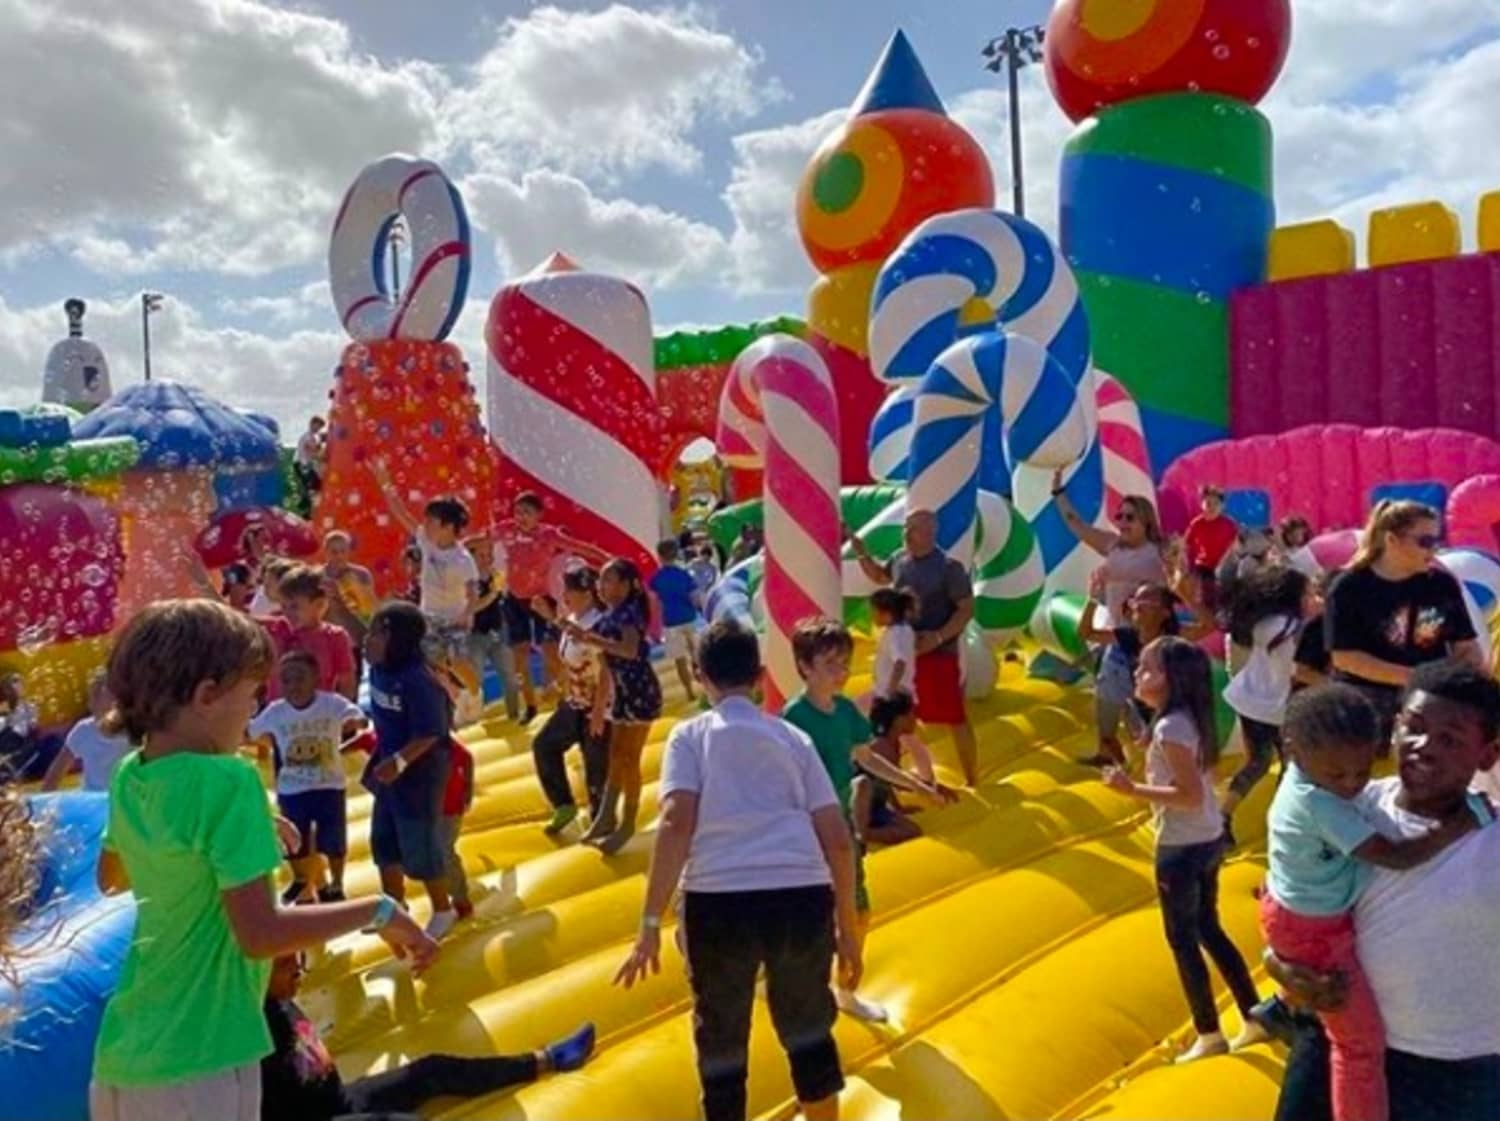 The World's Biggest Bounce House Is Touring America Right Now